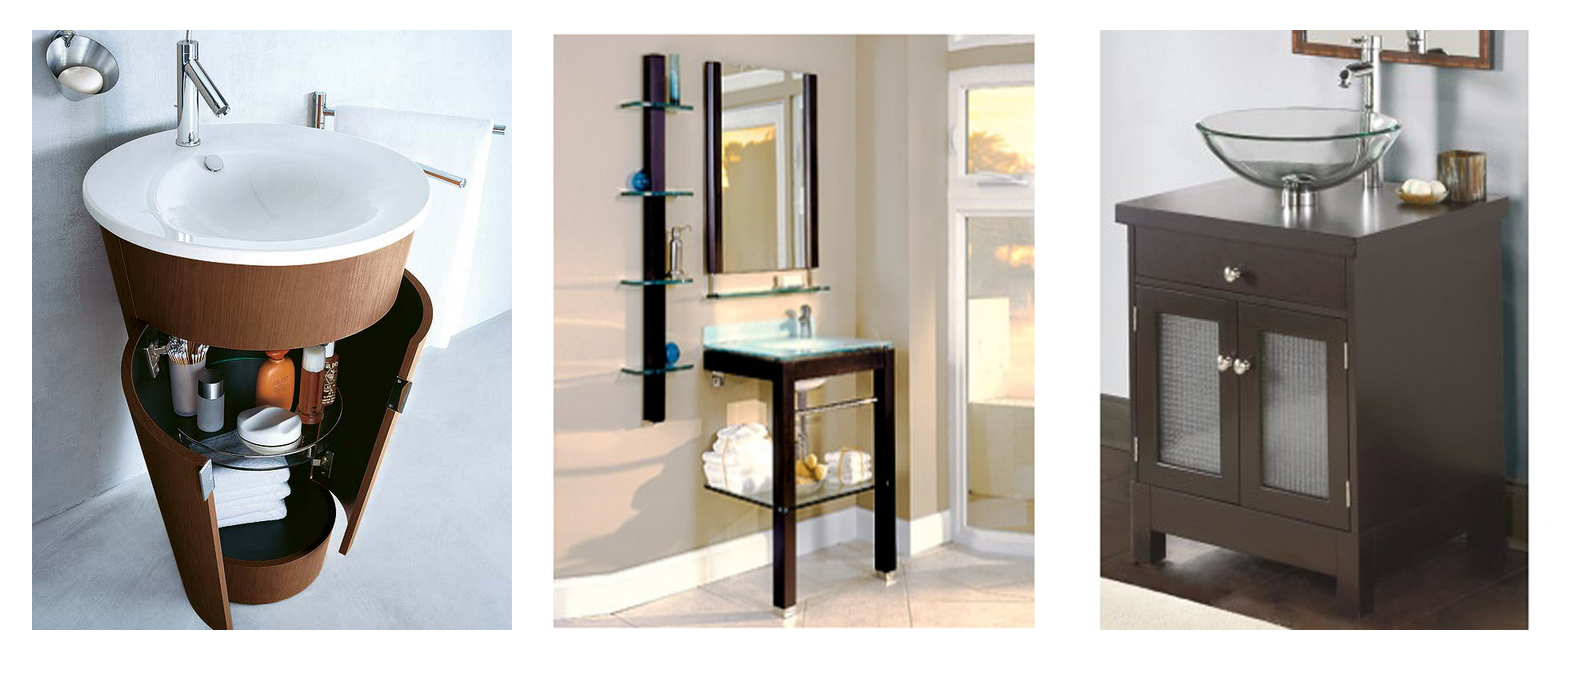 double vanity ideas for small bathrooms vanity ideas for small bathrooms new in inspiring remarkable master MBWETJU